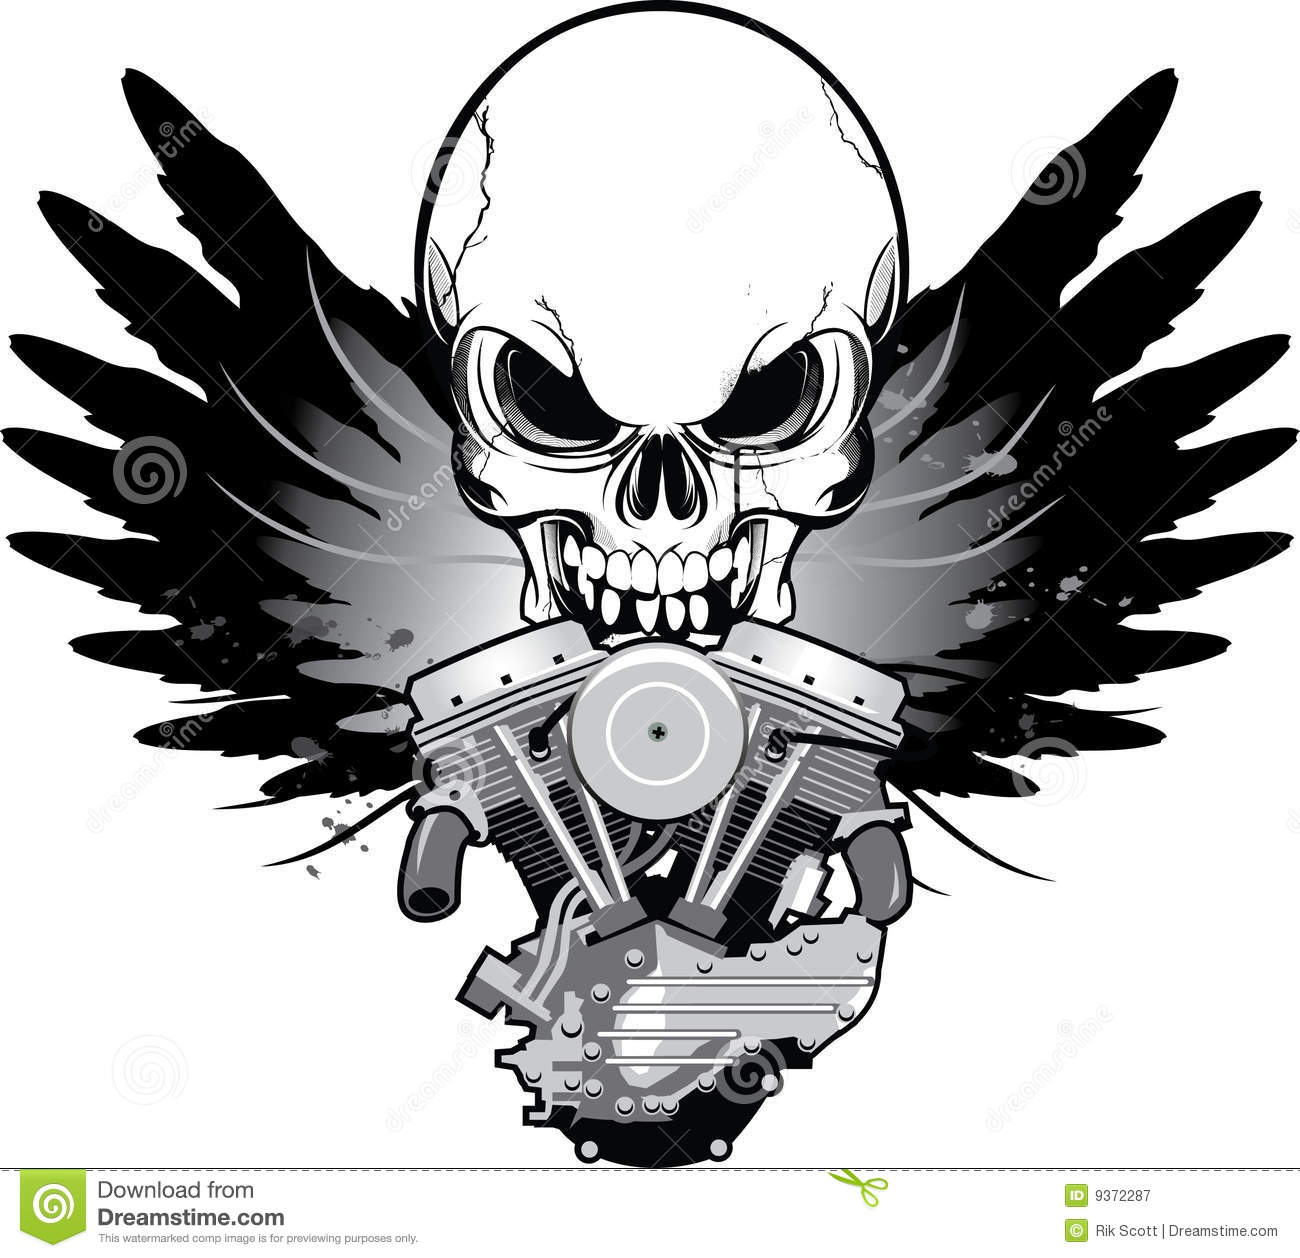 hight resolution of winged motorcycle engine with skull